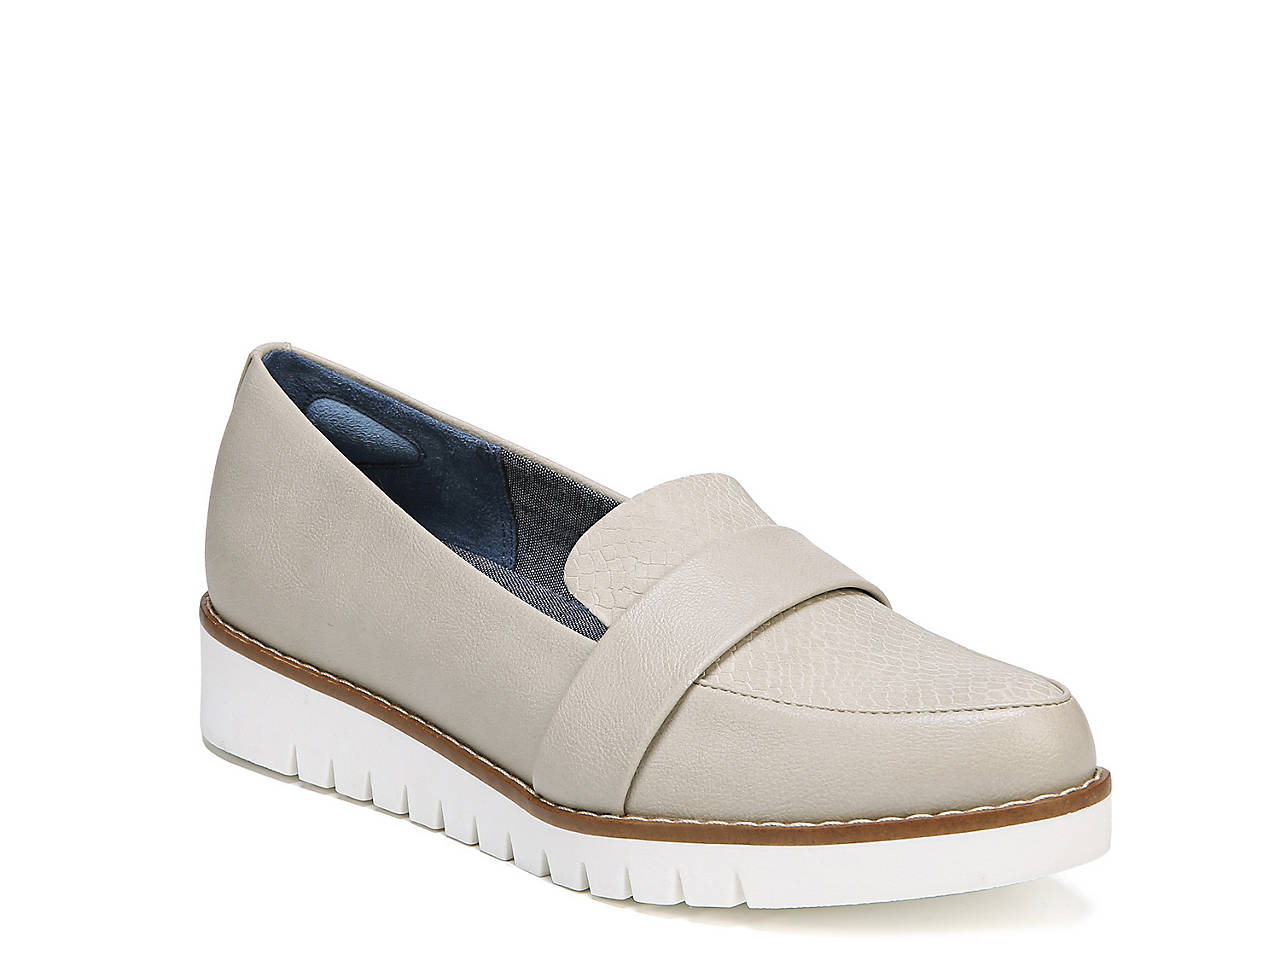 c7a7100714f Dr. Scholl s Imagine Wedge Loafer Women s Shoes